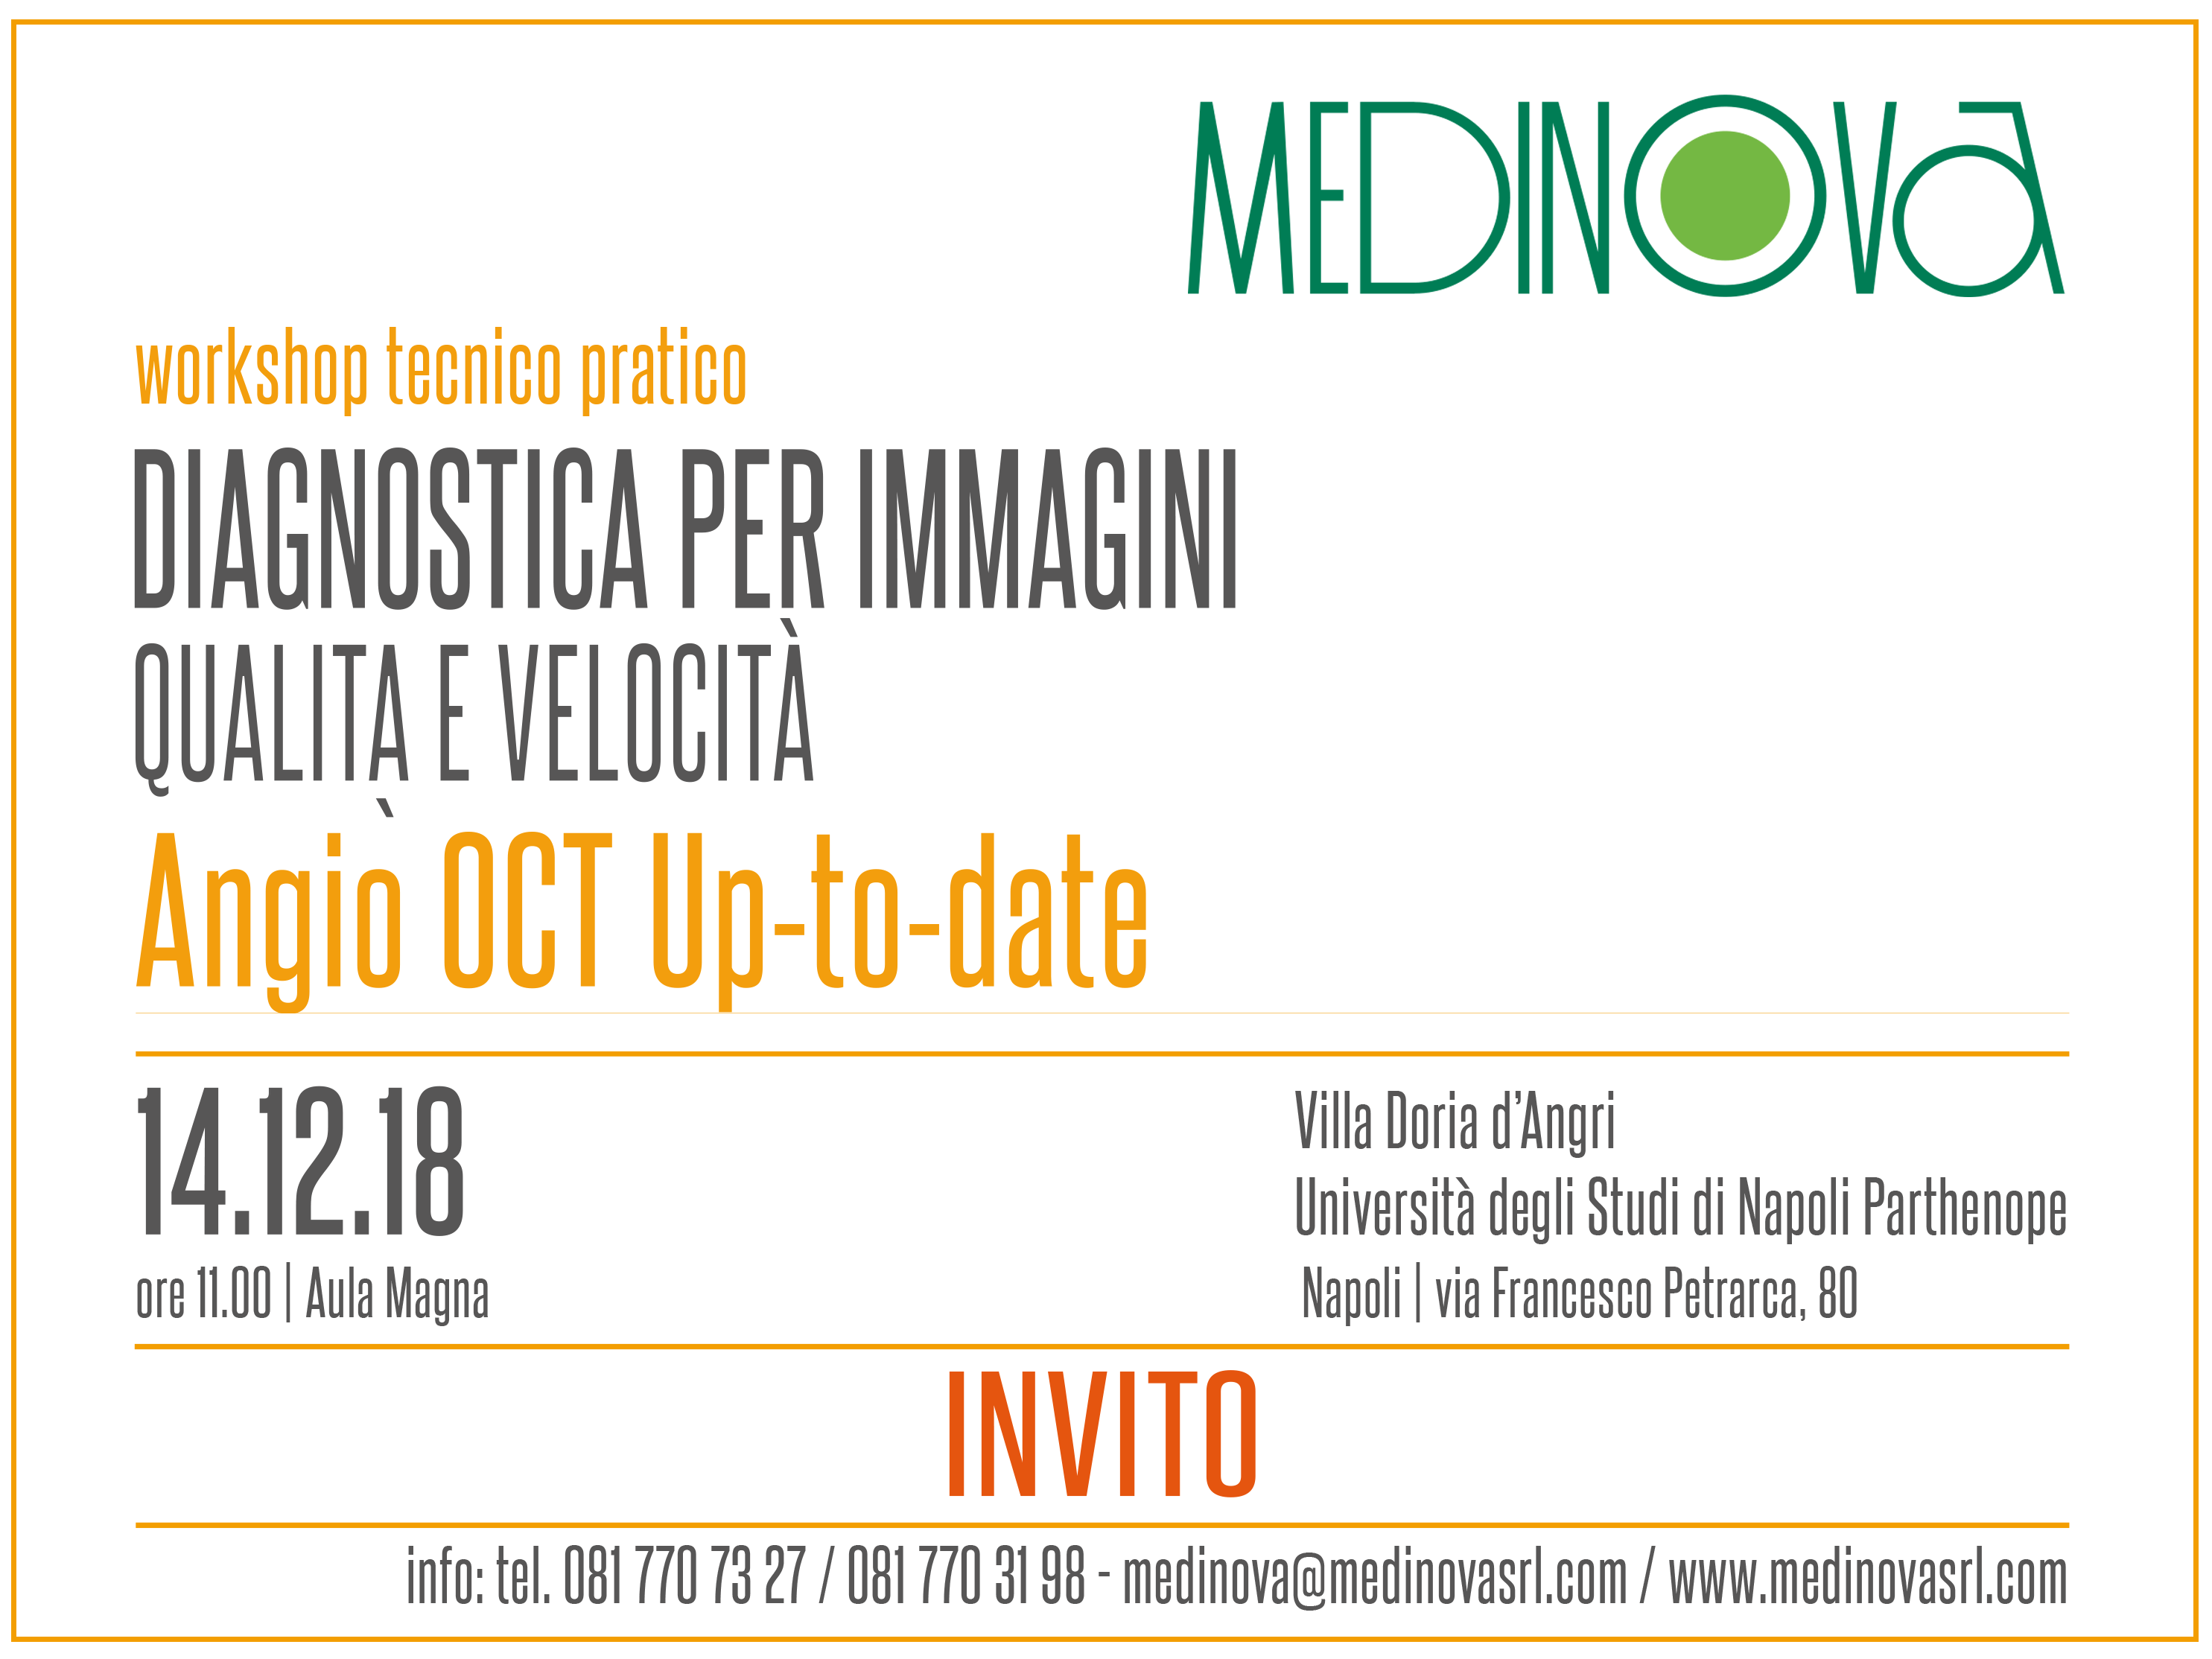 workshop Angio OCT Up-to-date